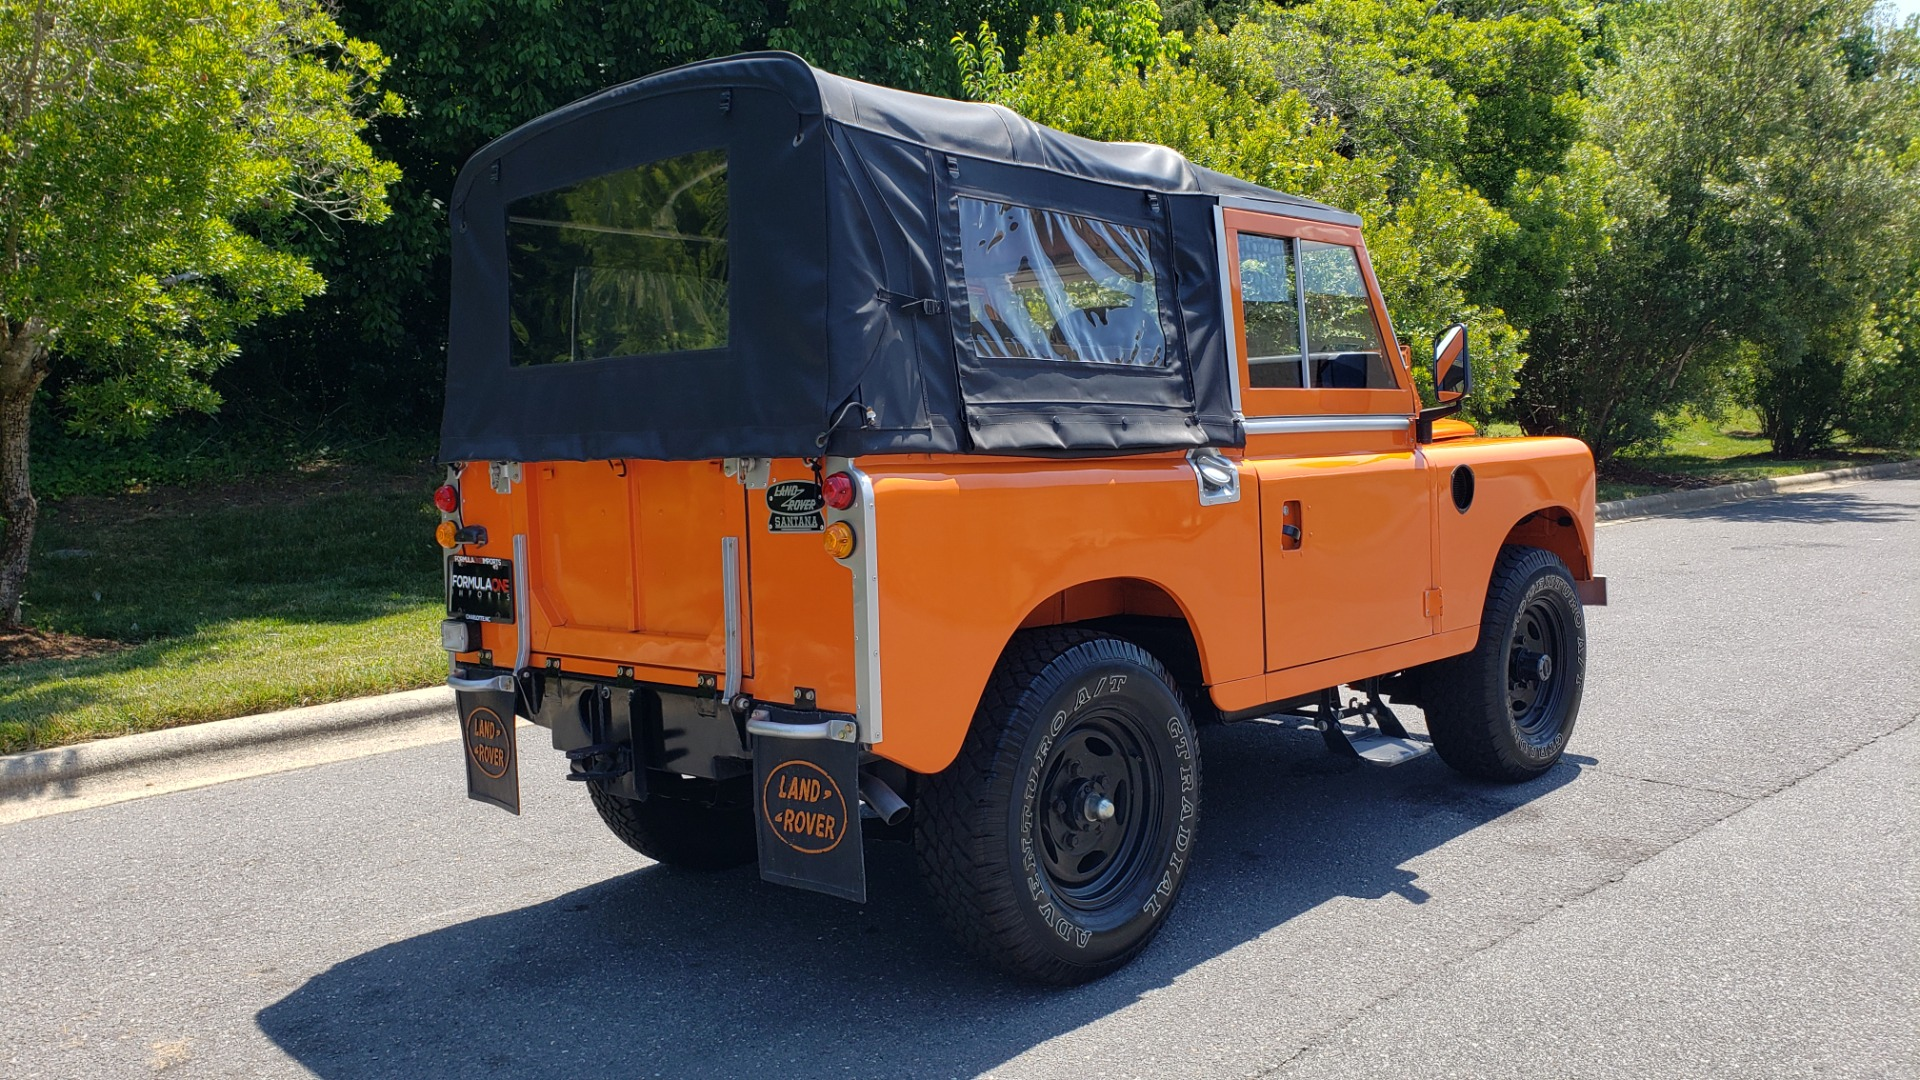 Used 1982 Land Rover SERIES 3 4X4 / SOFT-TOP / FULLY RESTORED / RUNS GREAT for sale $41,900 at Formula Imports in Charlotte NC 28227 6